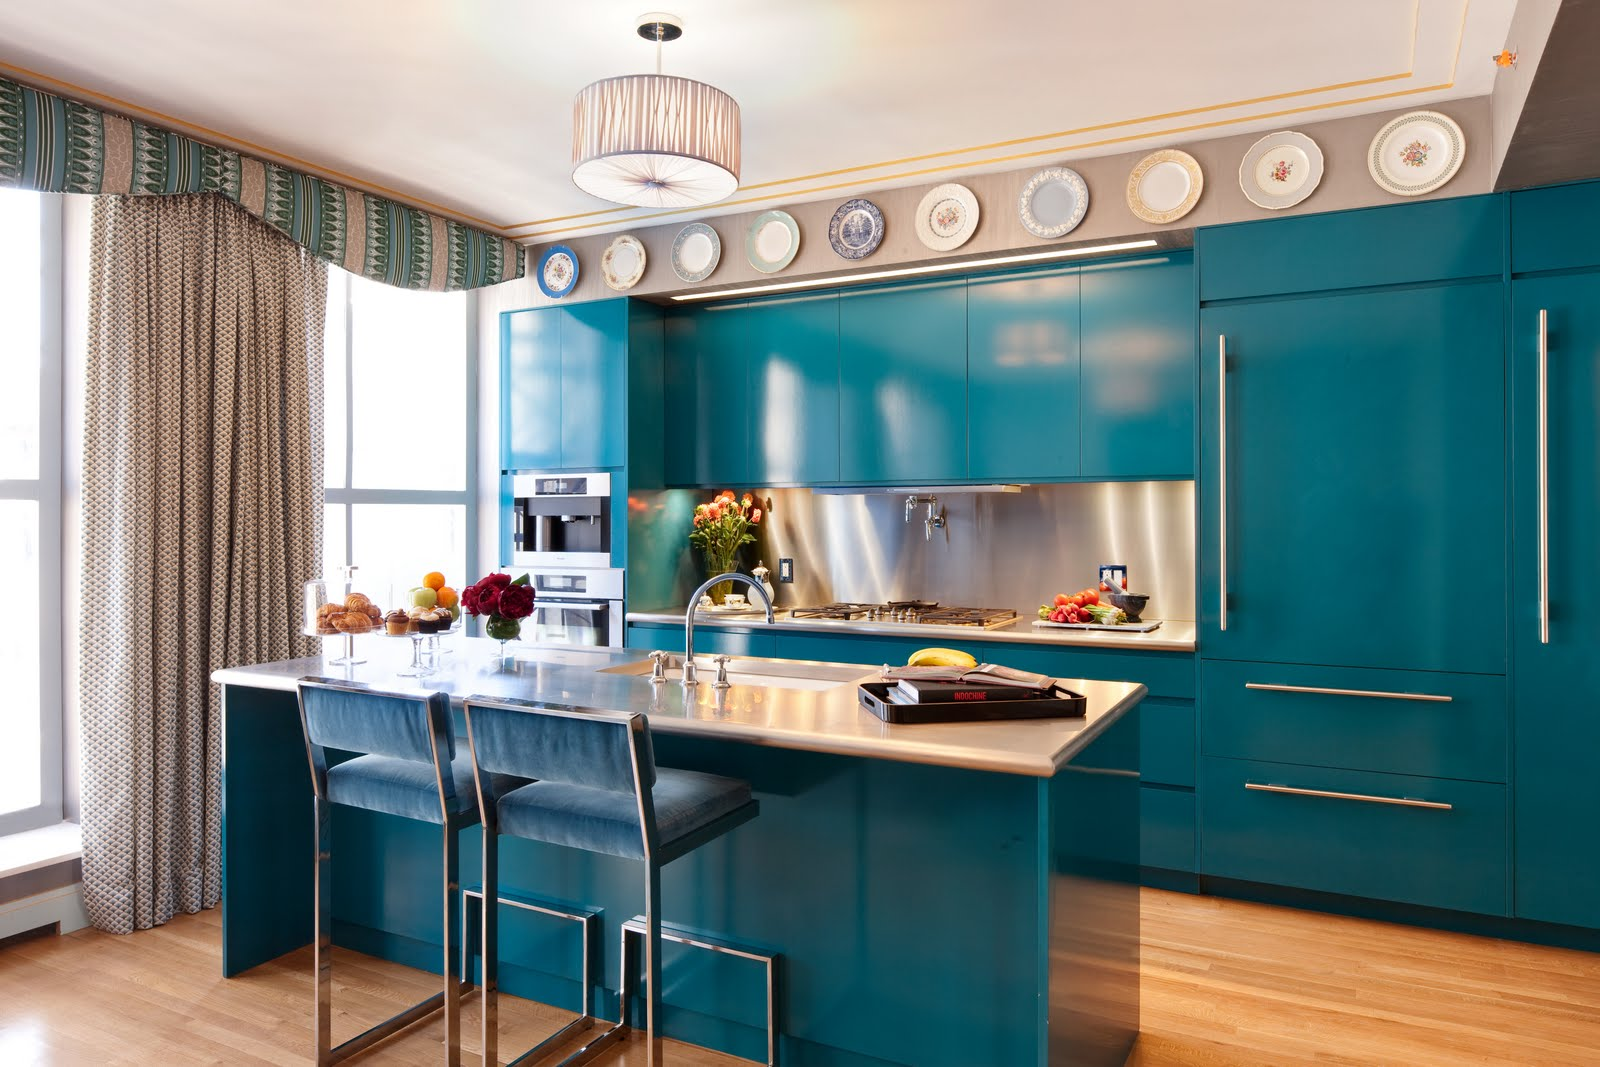 should kitchen cabinets match the hardwood floors cabinet kitchen Home Decorating Trends Homedit